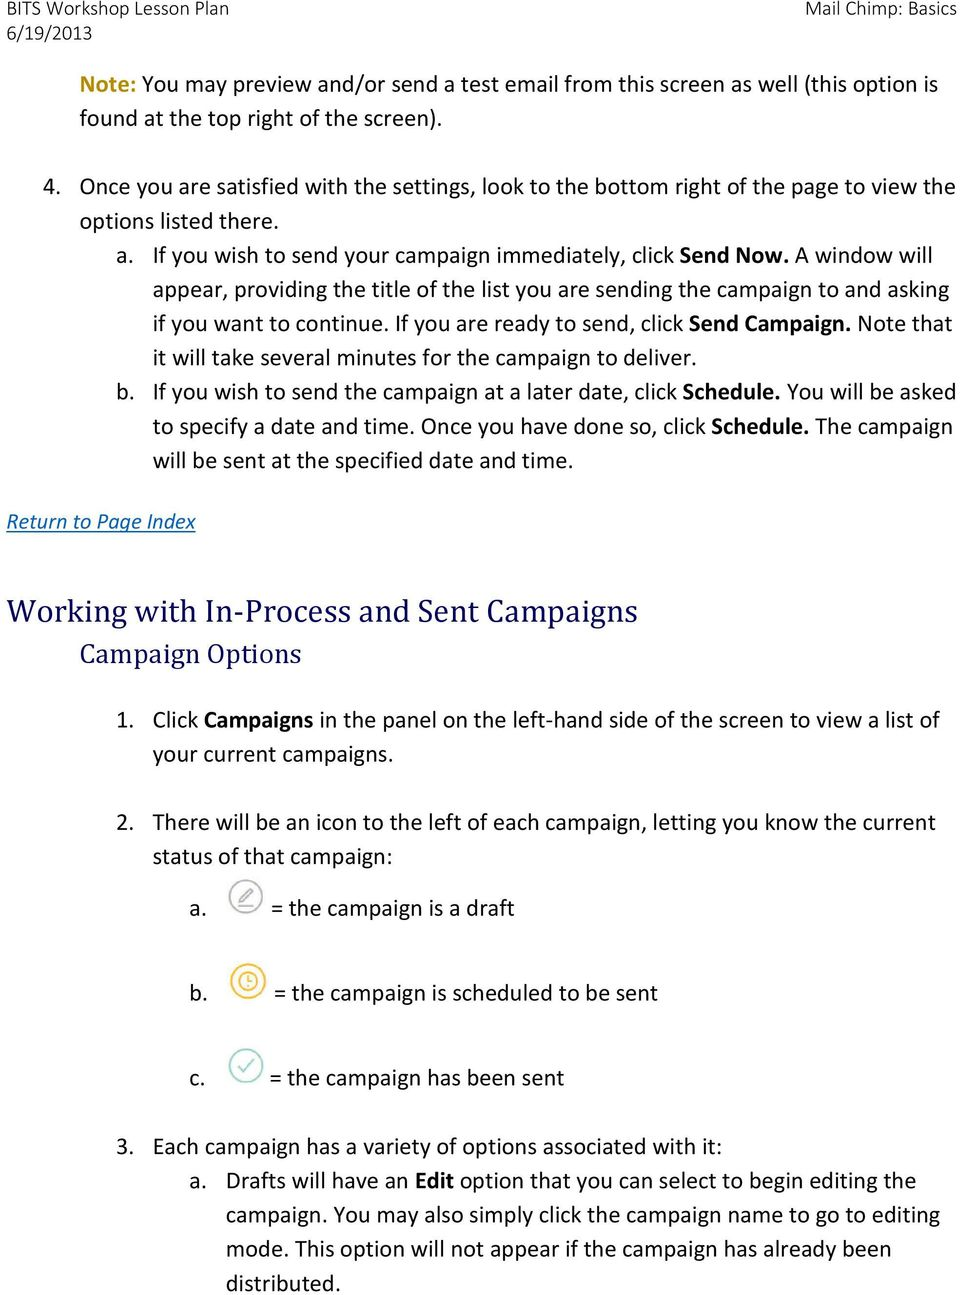 A window will appear, providing the title of the list you are sending the campaign to and asking if you want to continue. If you are ready to send, click Send Campaign.